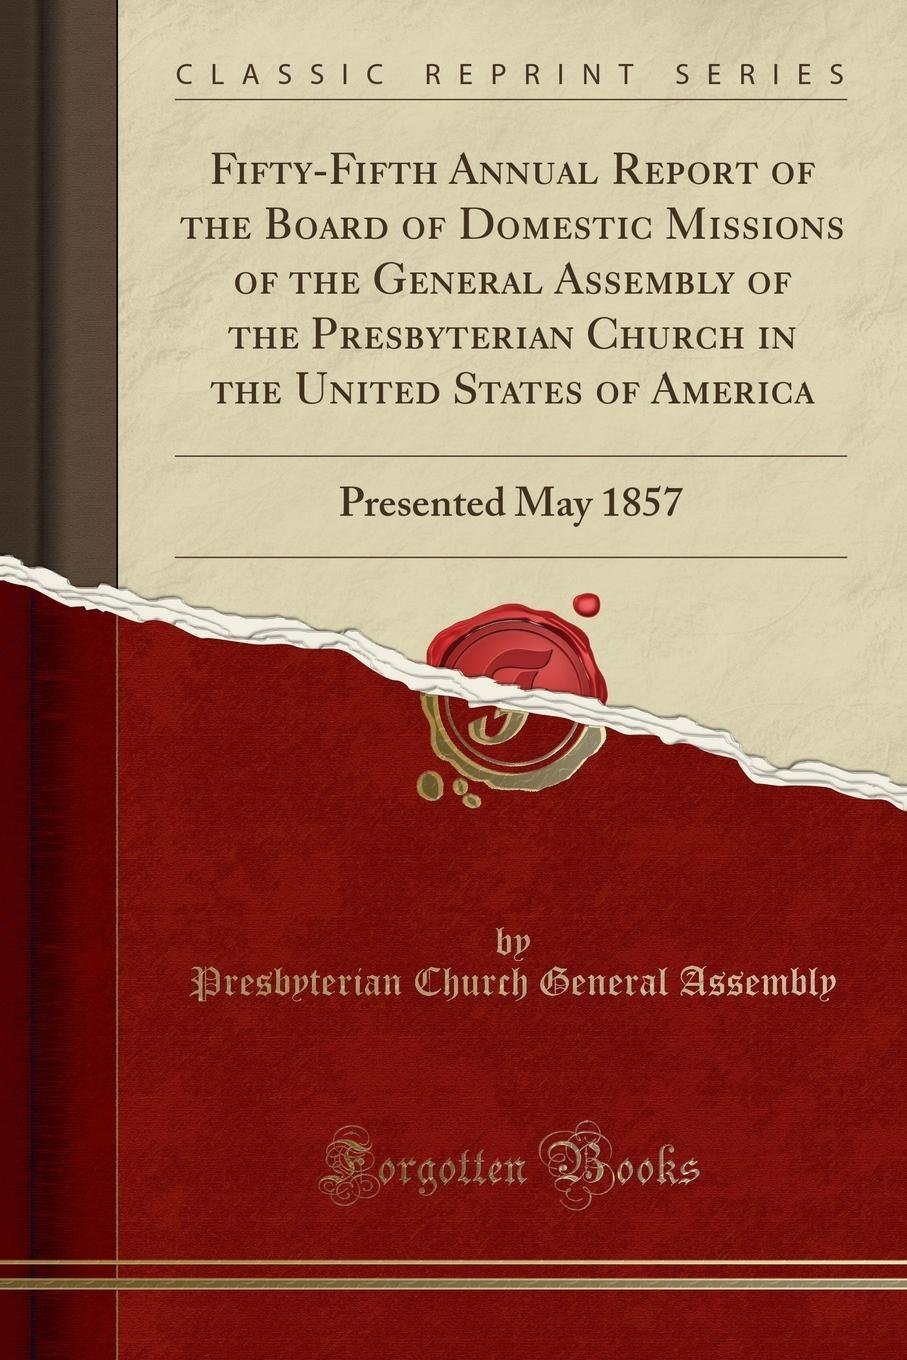 Download Fifty-Fifth Annual Report of the Board of Domestic Missions of the General Assembly of the Presbyterian Church in the United States of America: Presented May 1857 (Classic Reprint) ebook